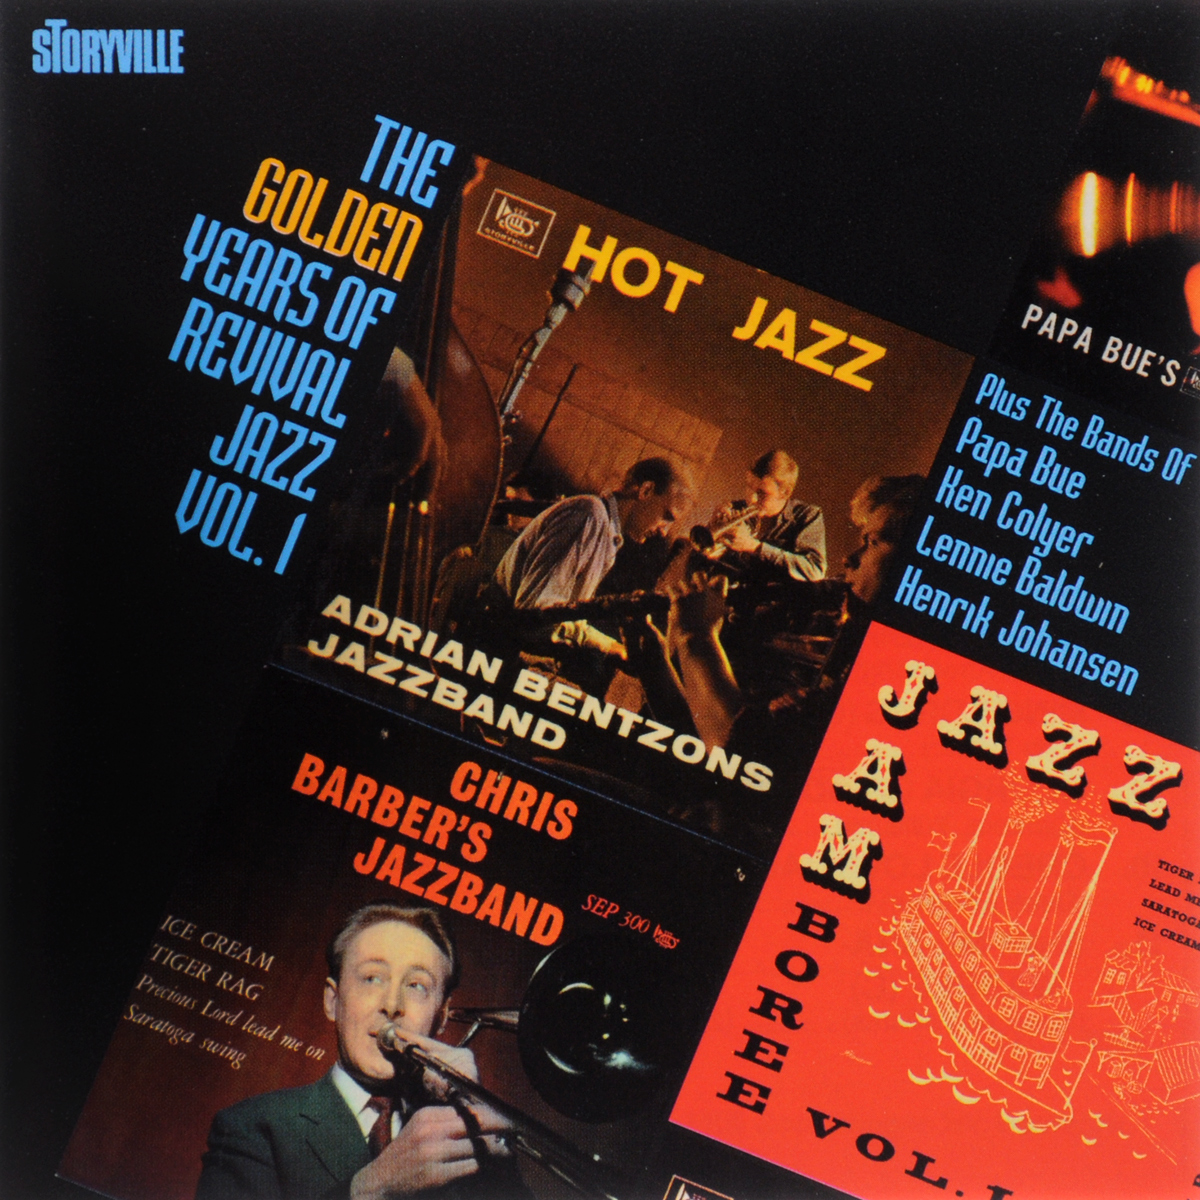 Chris Barber's Jazzband,Cy Laurie's New Orleans Septet,Билли Блэнкс,Adrian Bentzon's Jazzband,Ken Colyer's Jazzmen,Henrik Johansen's Jazzband,Lennie Baldwin's Dauphin Street Six,Papa Bue's Viking Jazz Band The Golden Years Of Revival Jazz Vol. 1 creedence clearwater revival creedence clearwater revival mardi gras lp